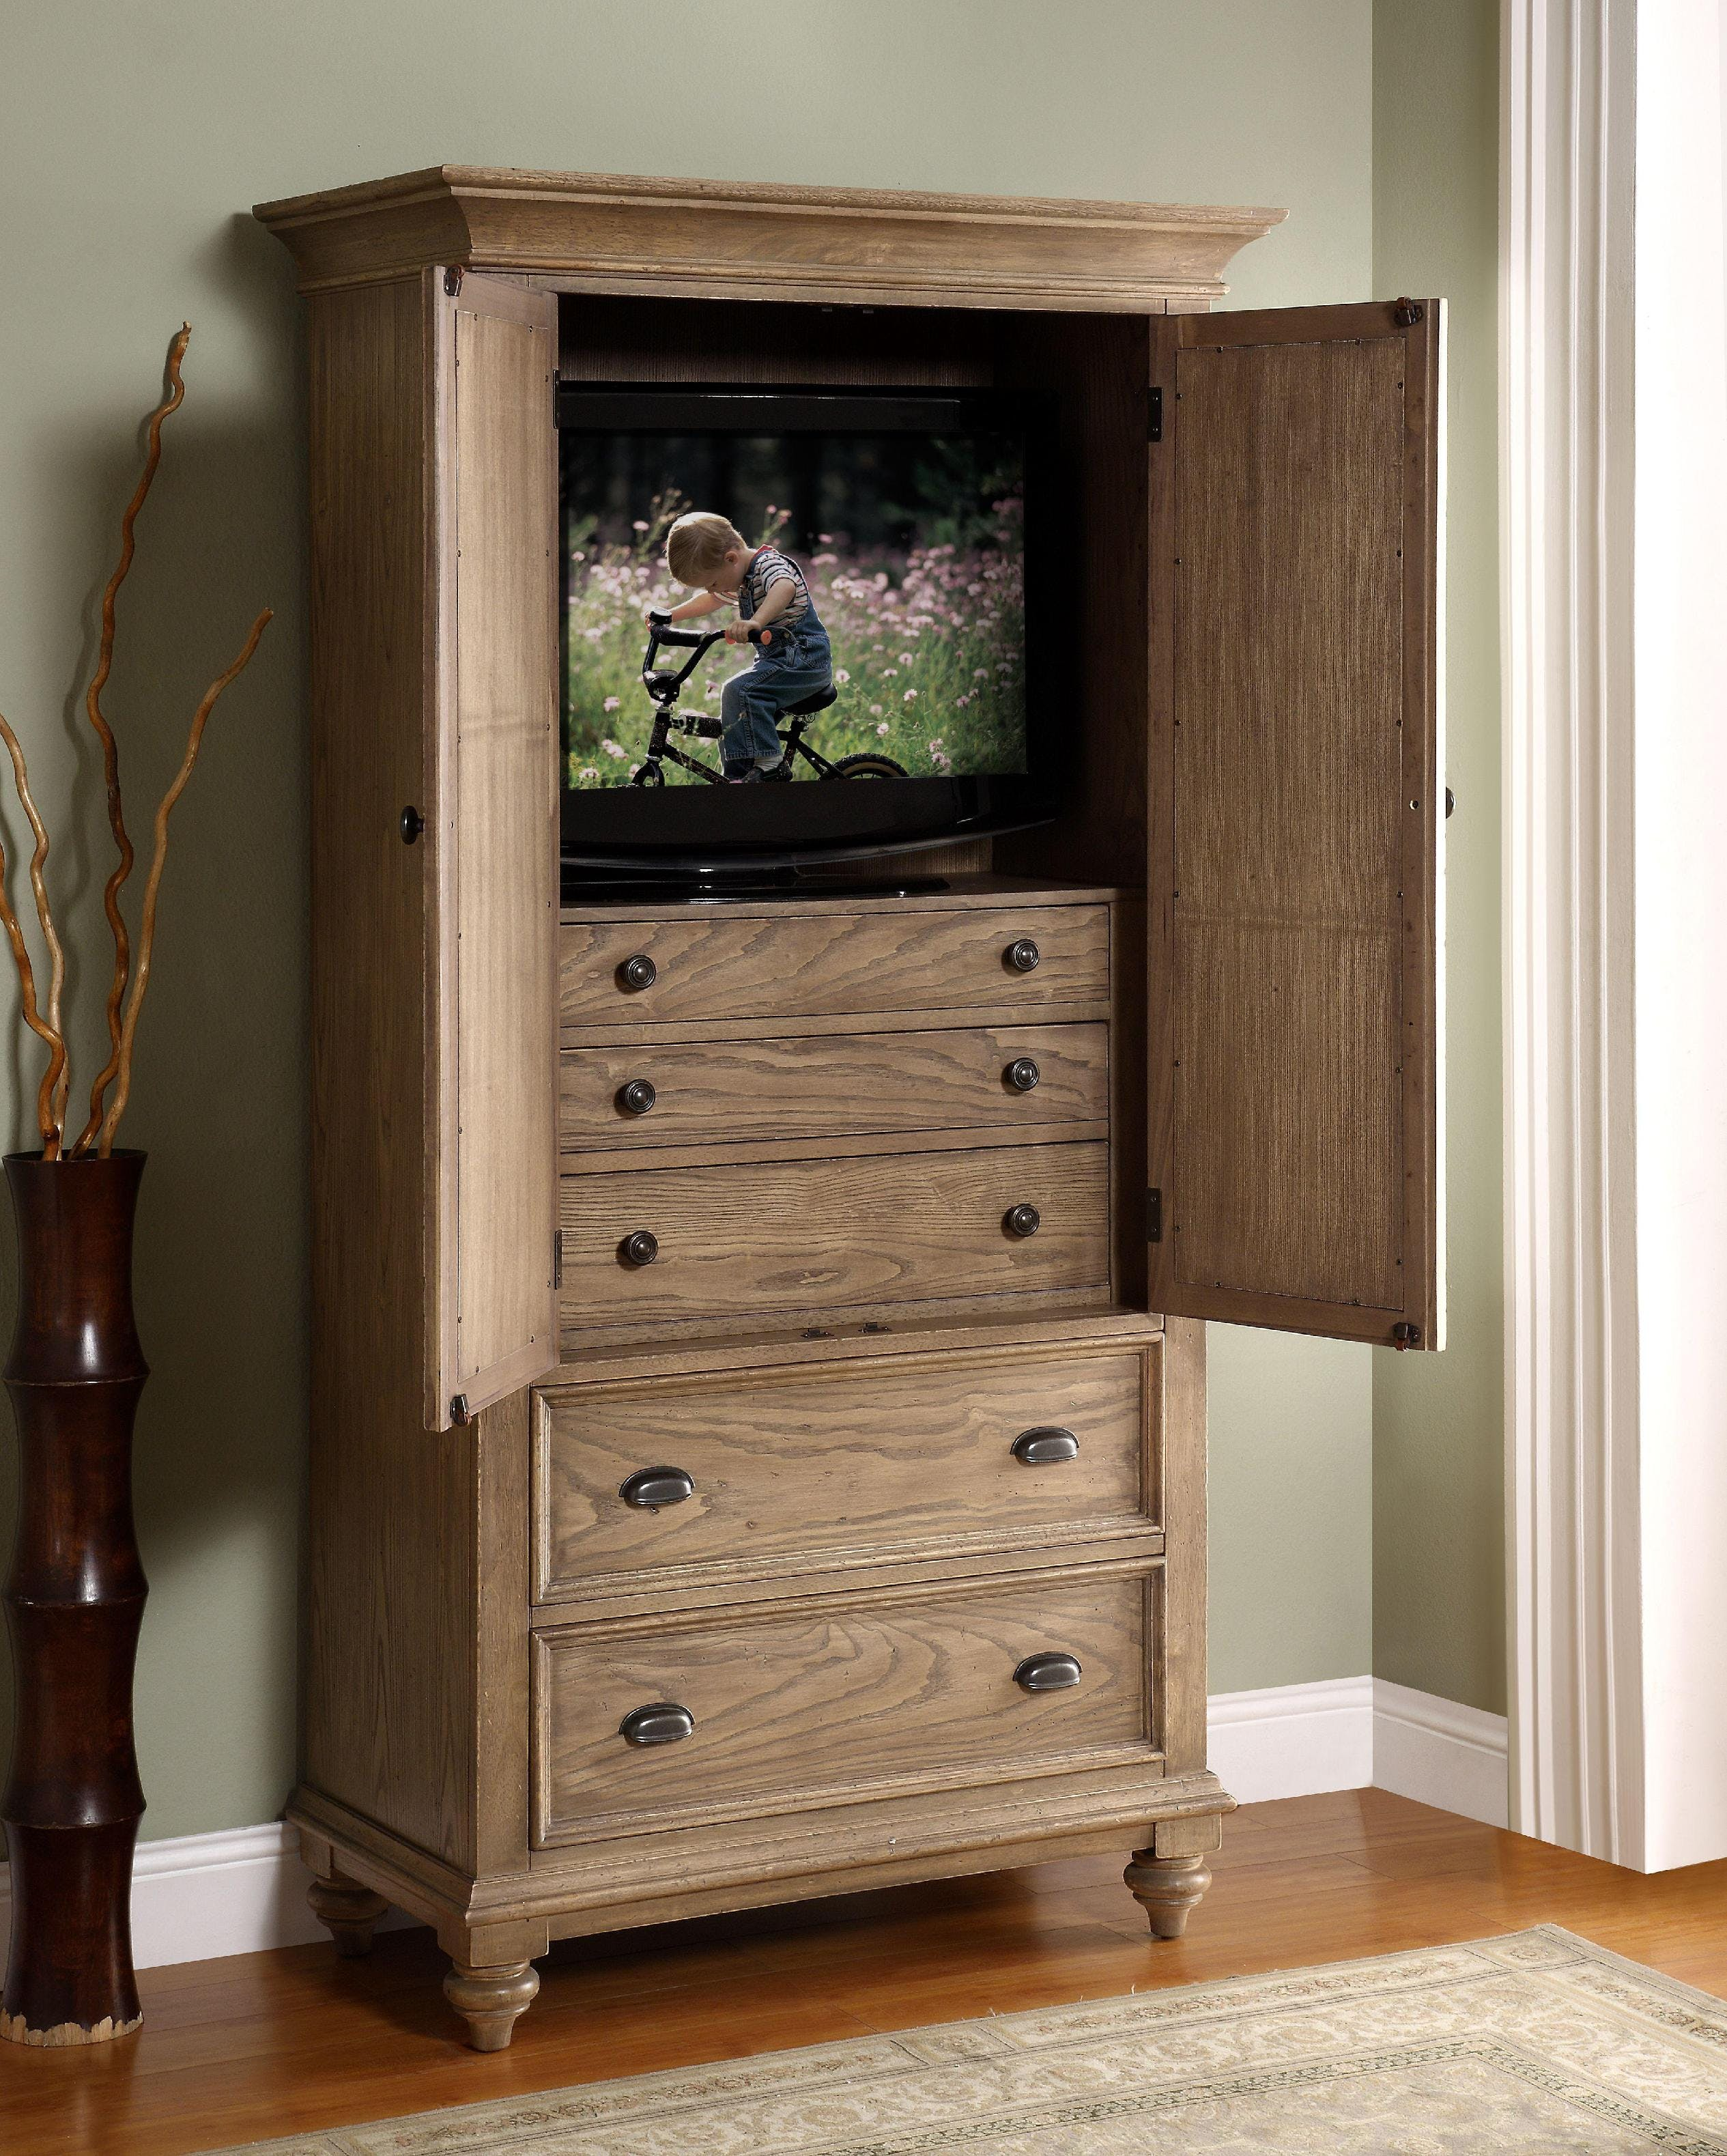 Riverside Bedroom Armoire 32463 - Carol House Furniture - Maryland